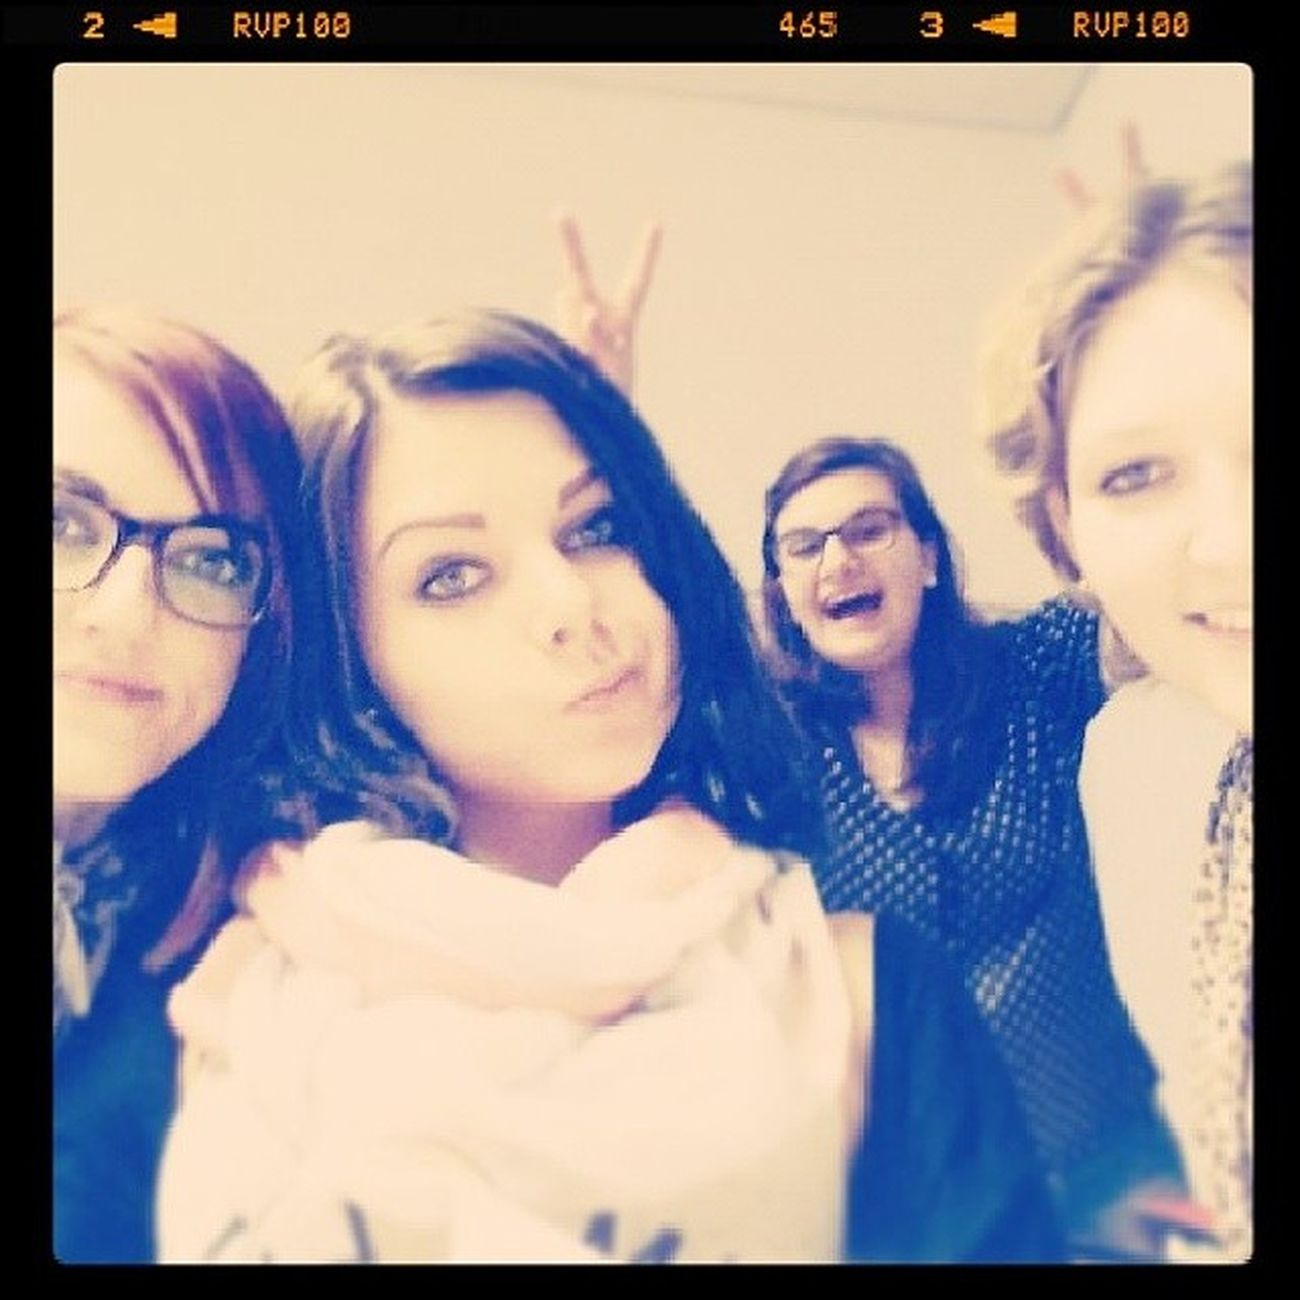 Photobomb School Sugly Girlpower stupid funny loveyougirls